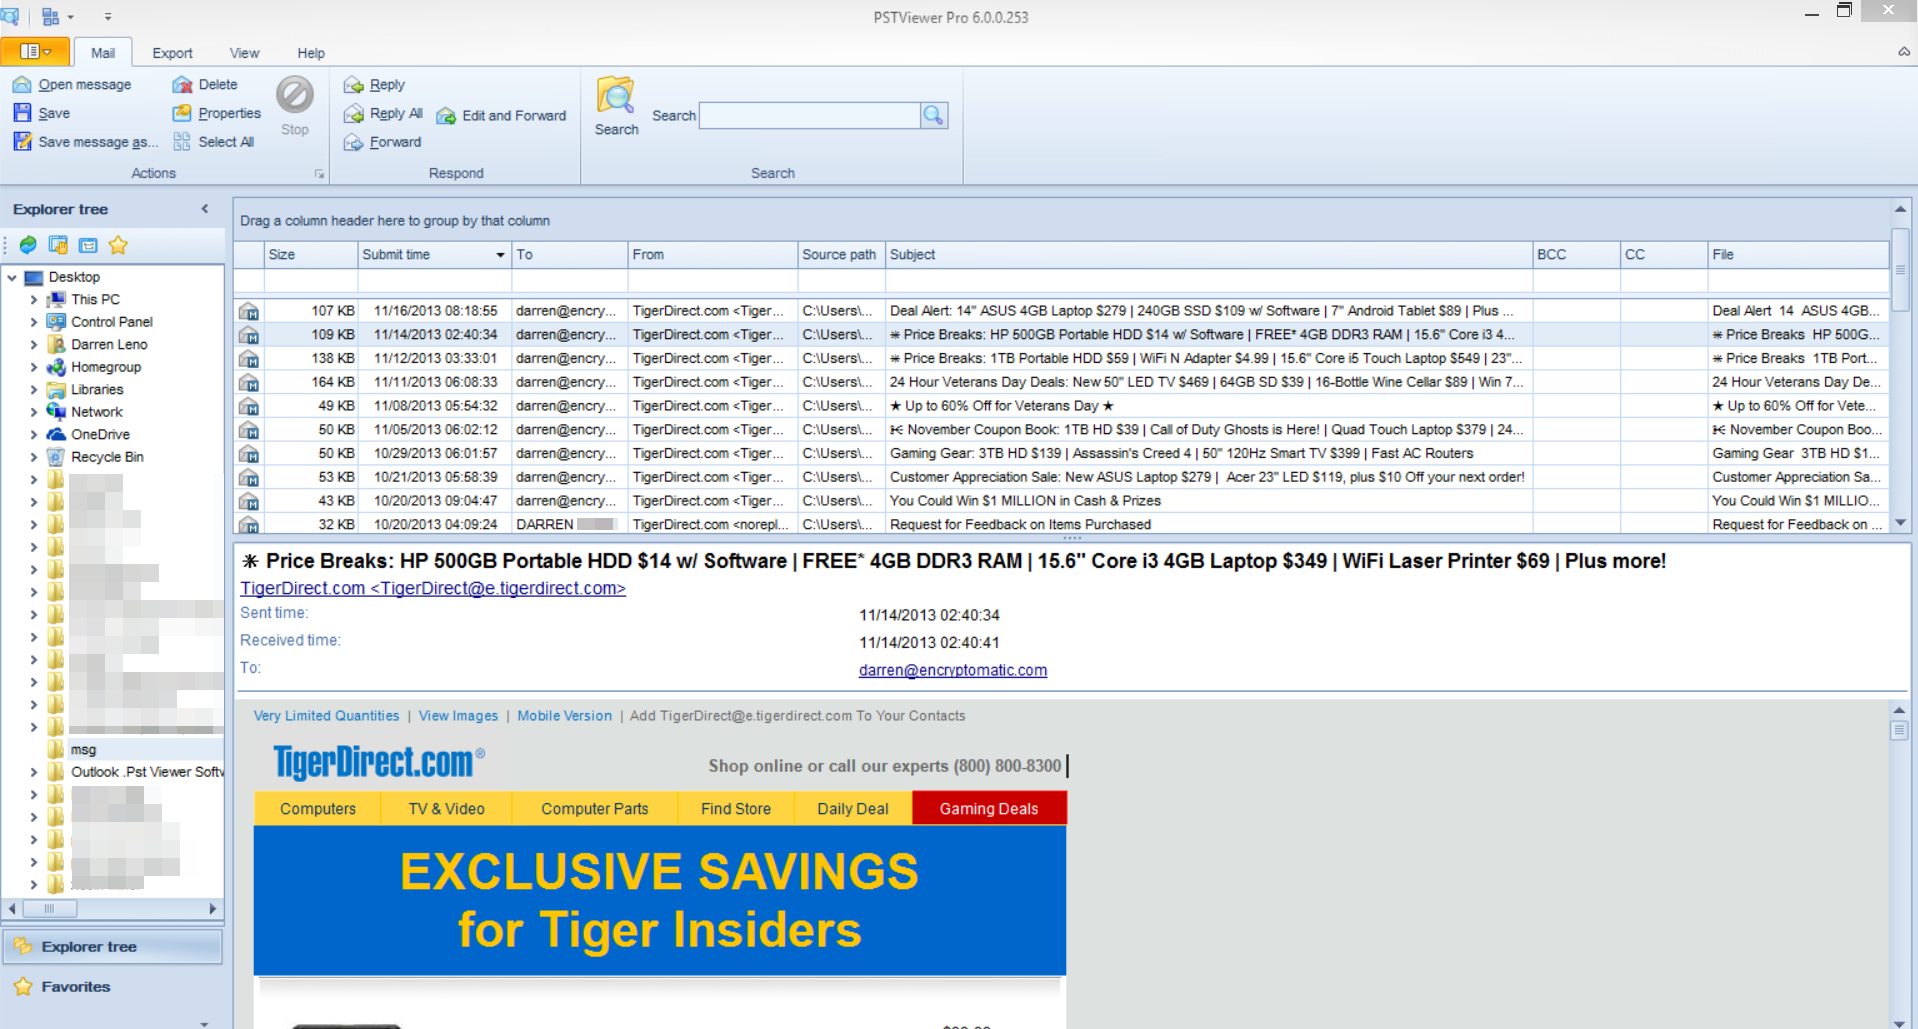 Screen shot of of the main user screen, PstViewer Pro email viewer software.